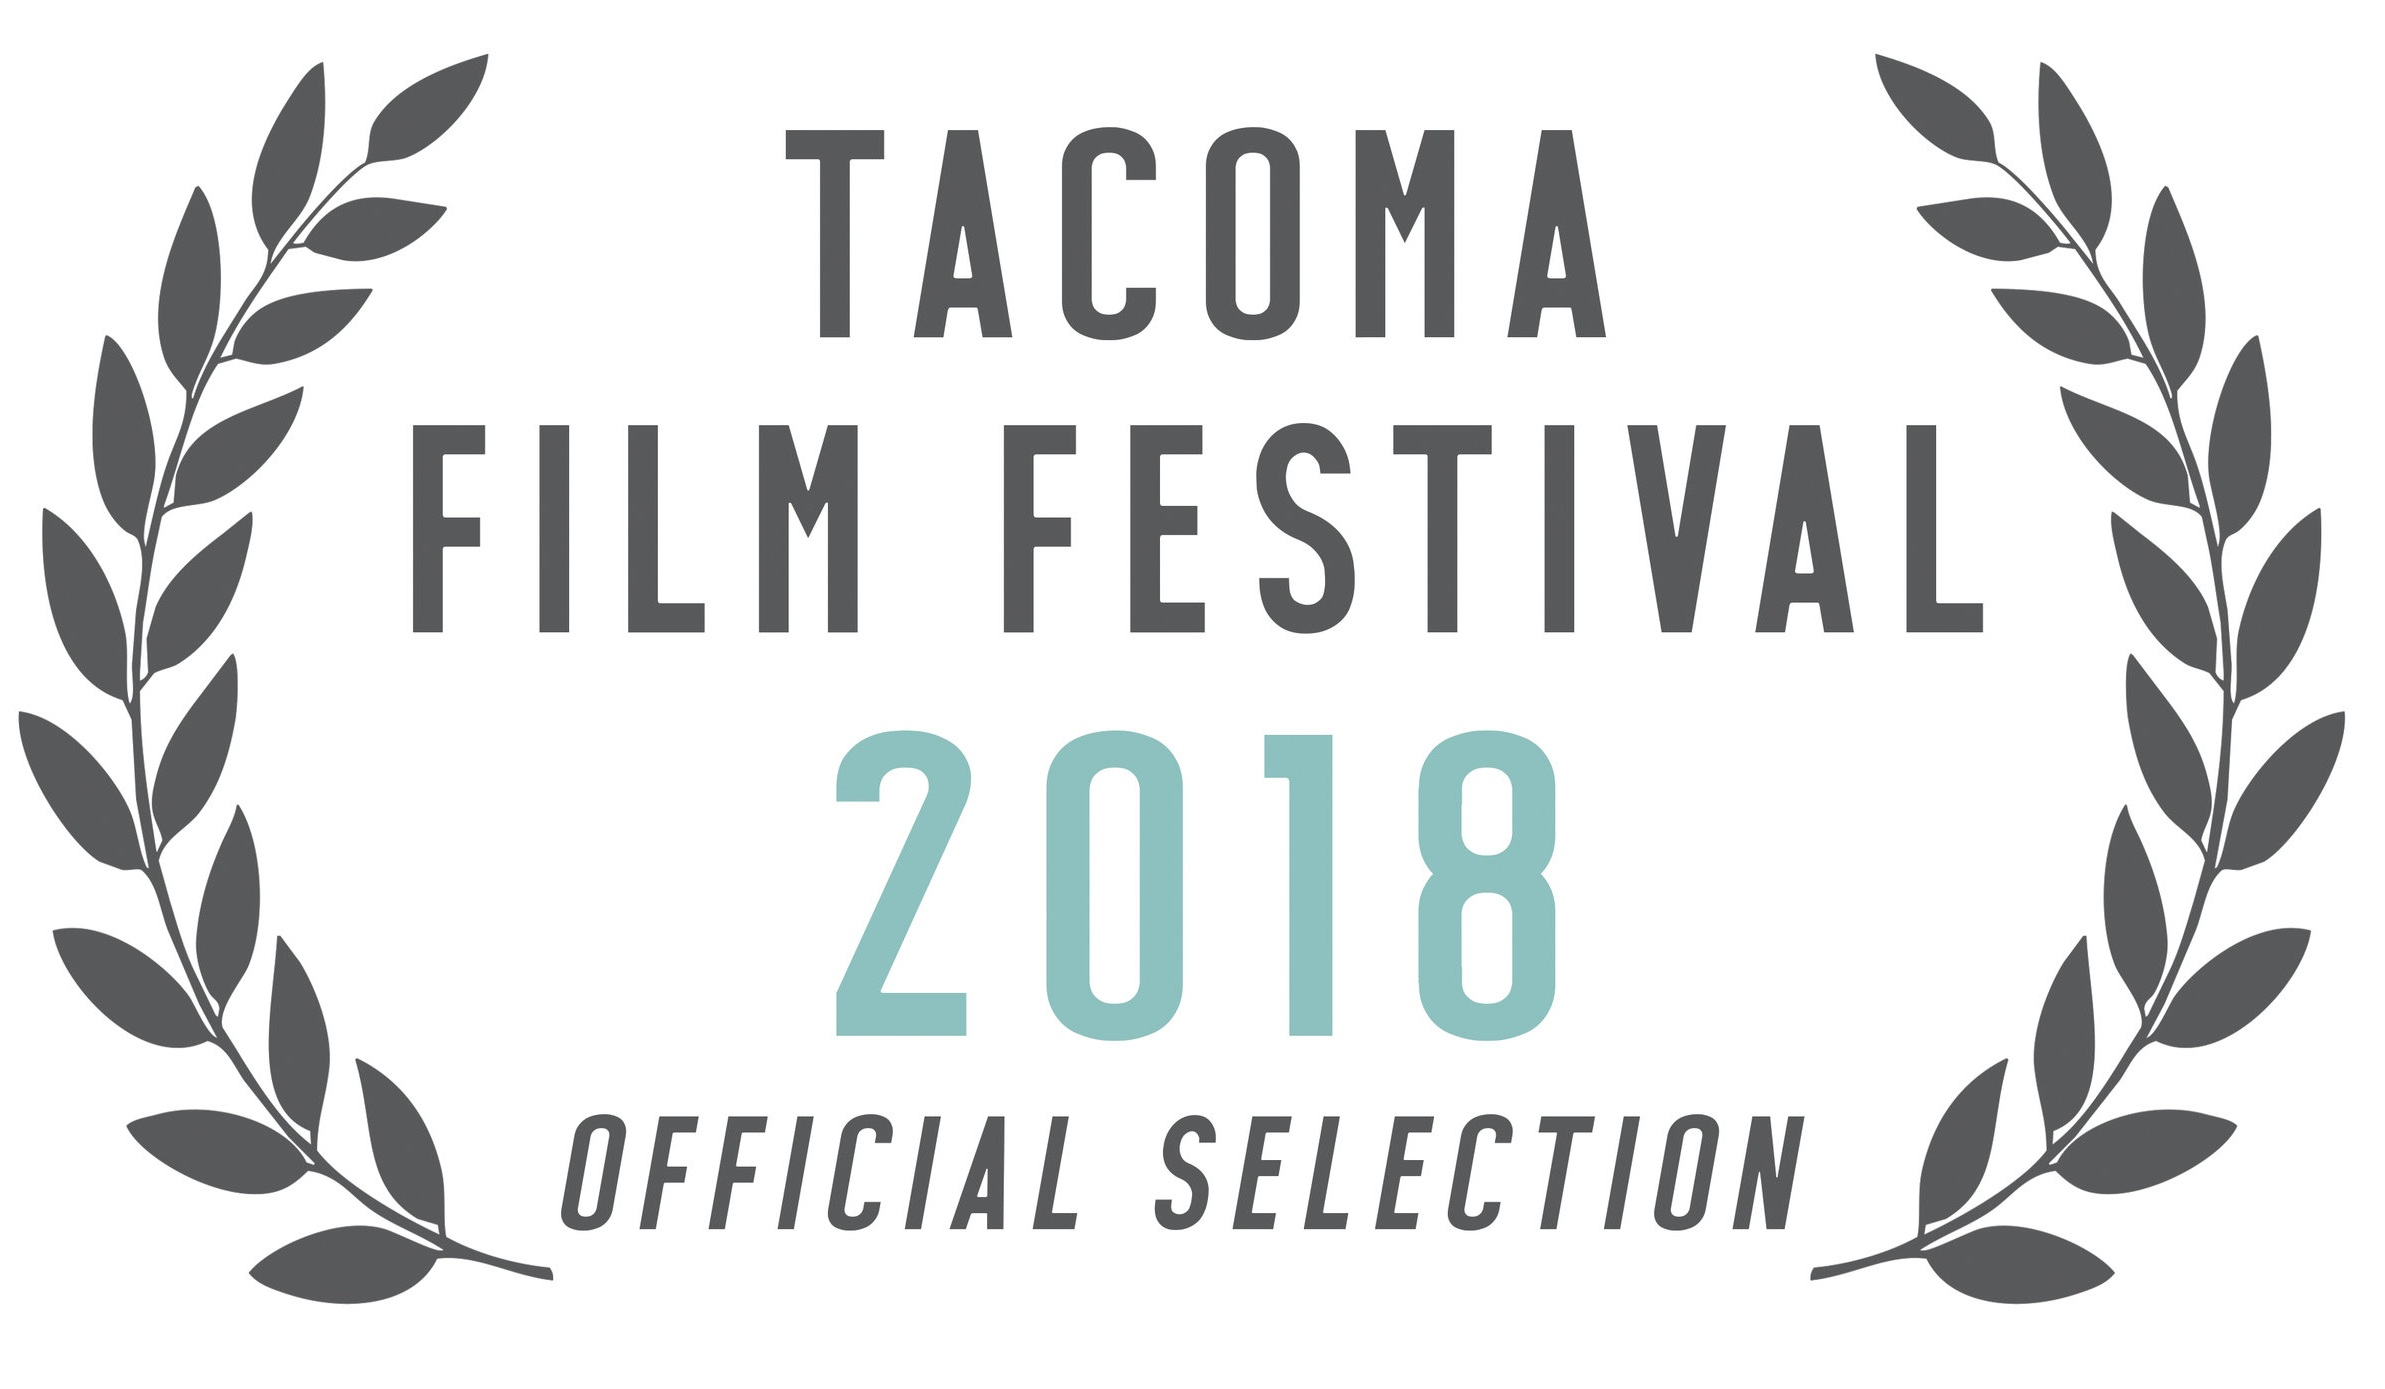 World premiere - Book of Daniel premiered at Tacoma Film Festival in the World Without Borders program!